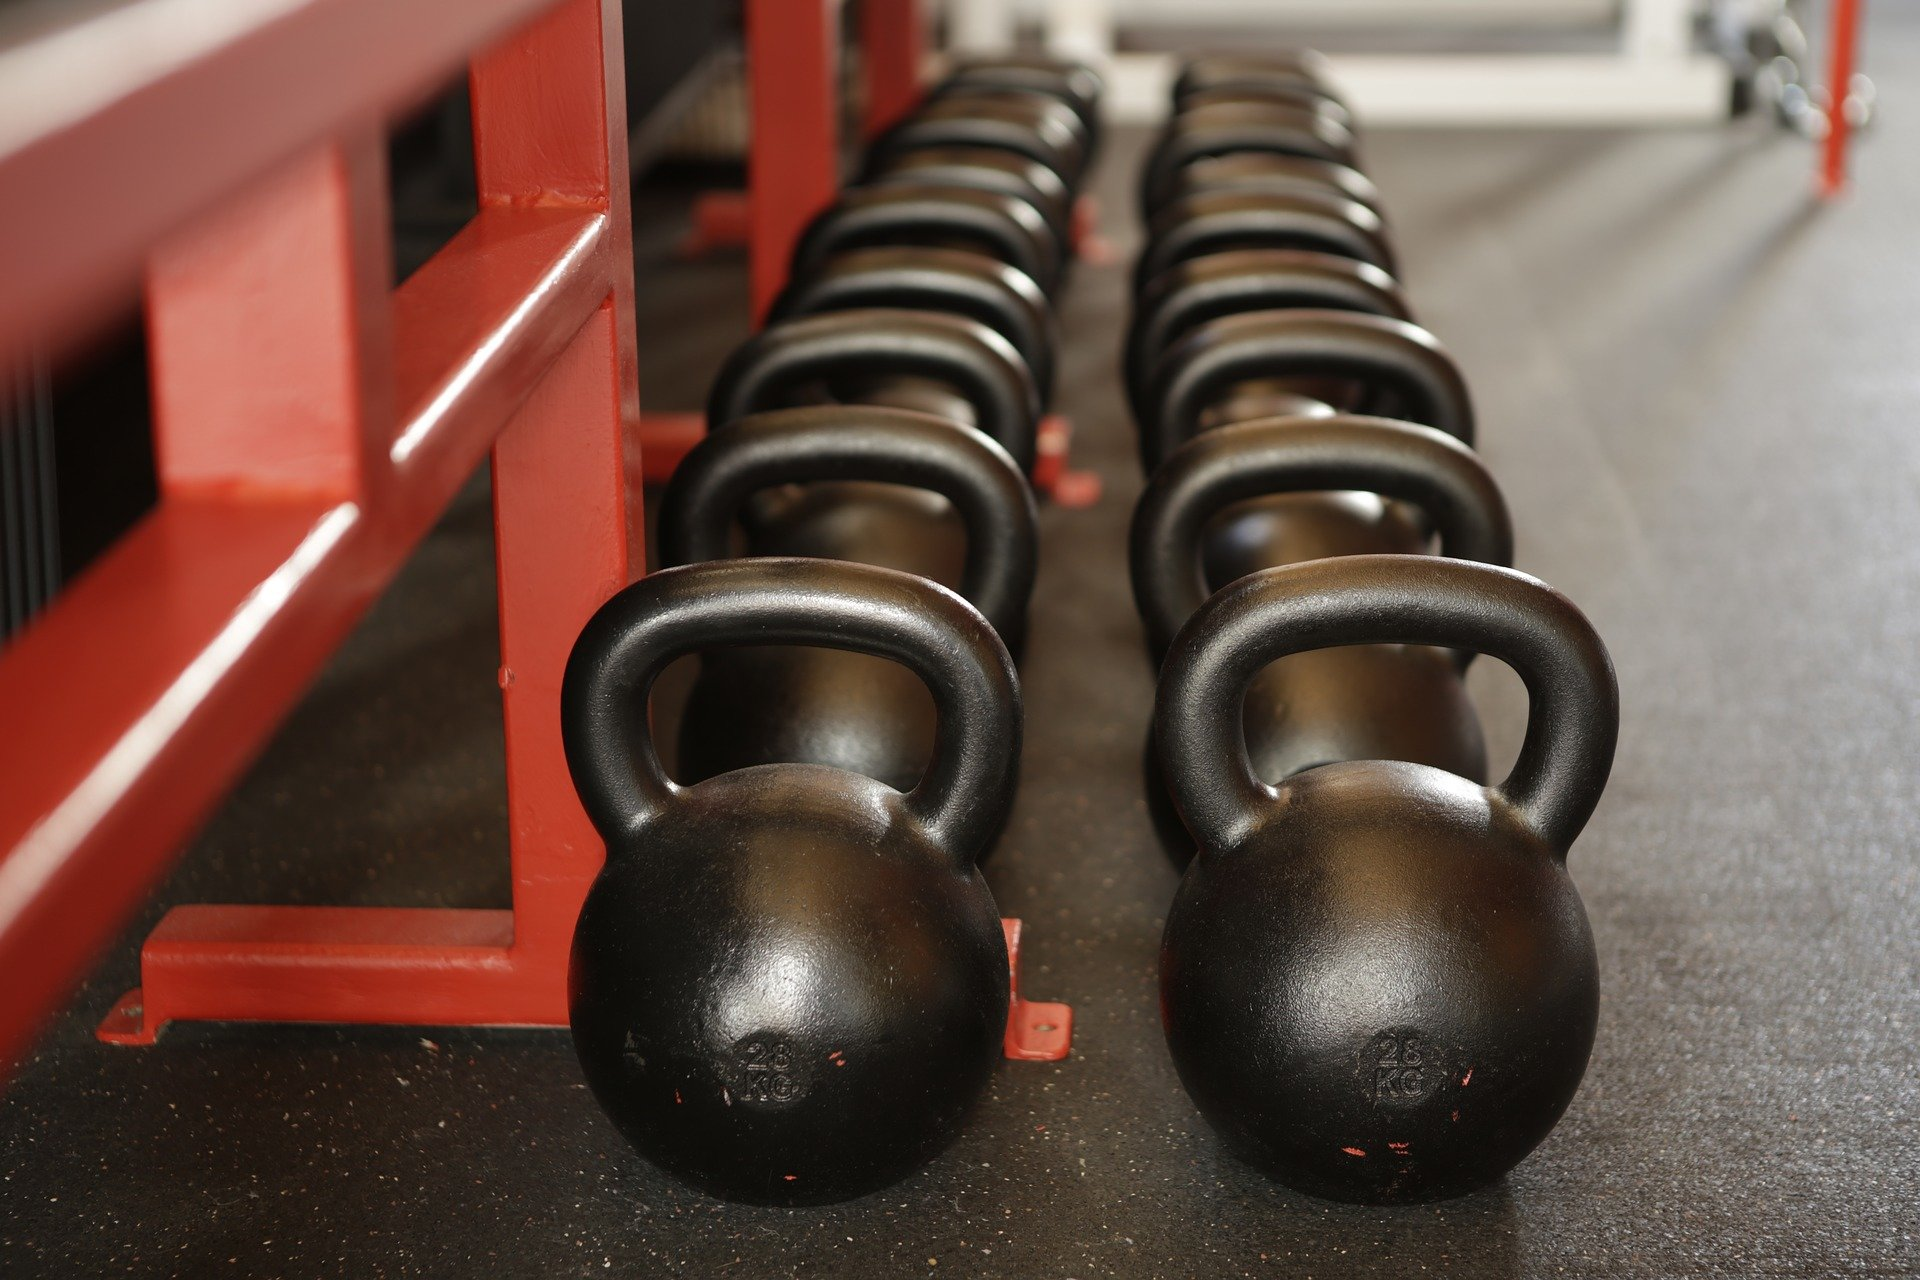 black kettlebells on the floor in a gym